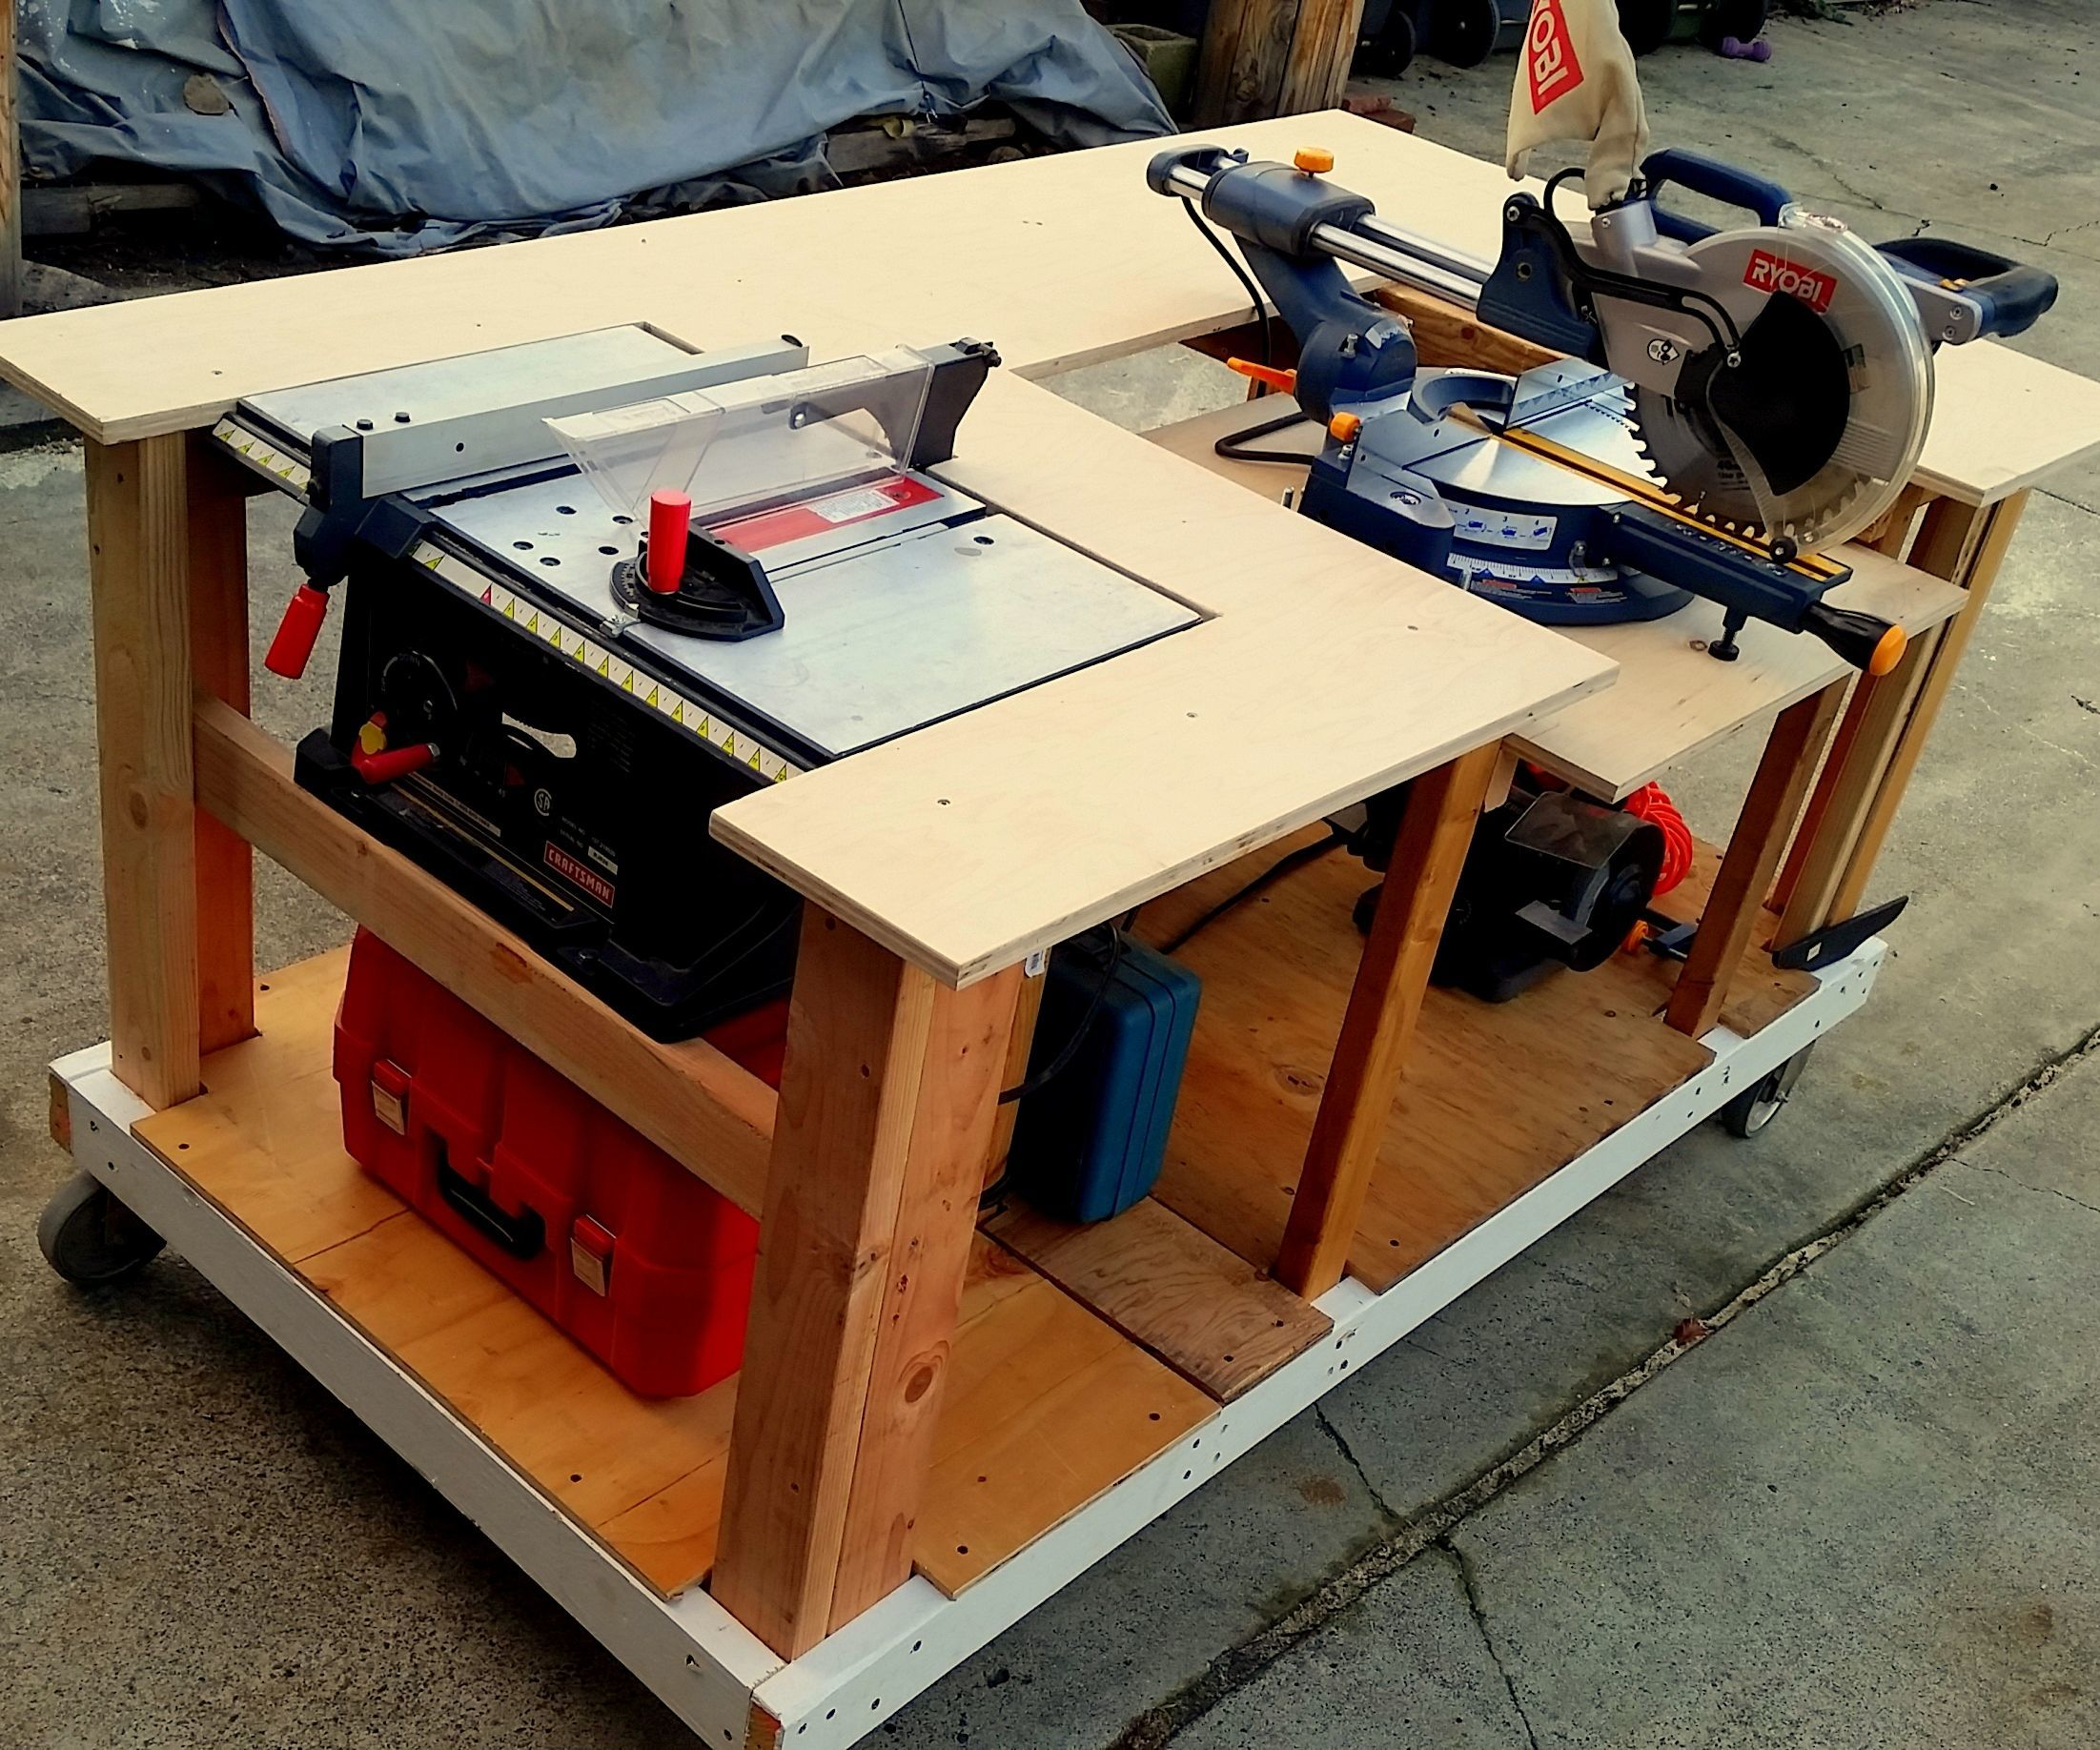 Mobile Workbench With Built-in Table & Miter Saws 8 Steps